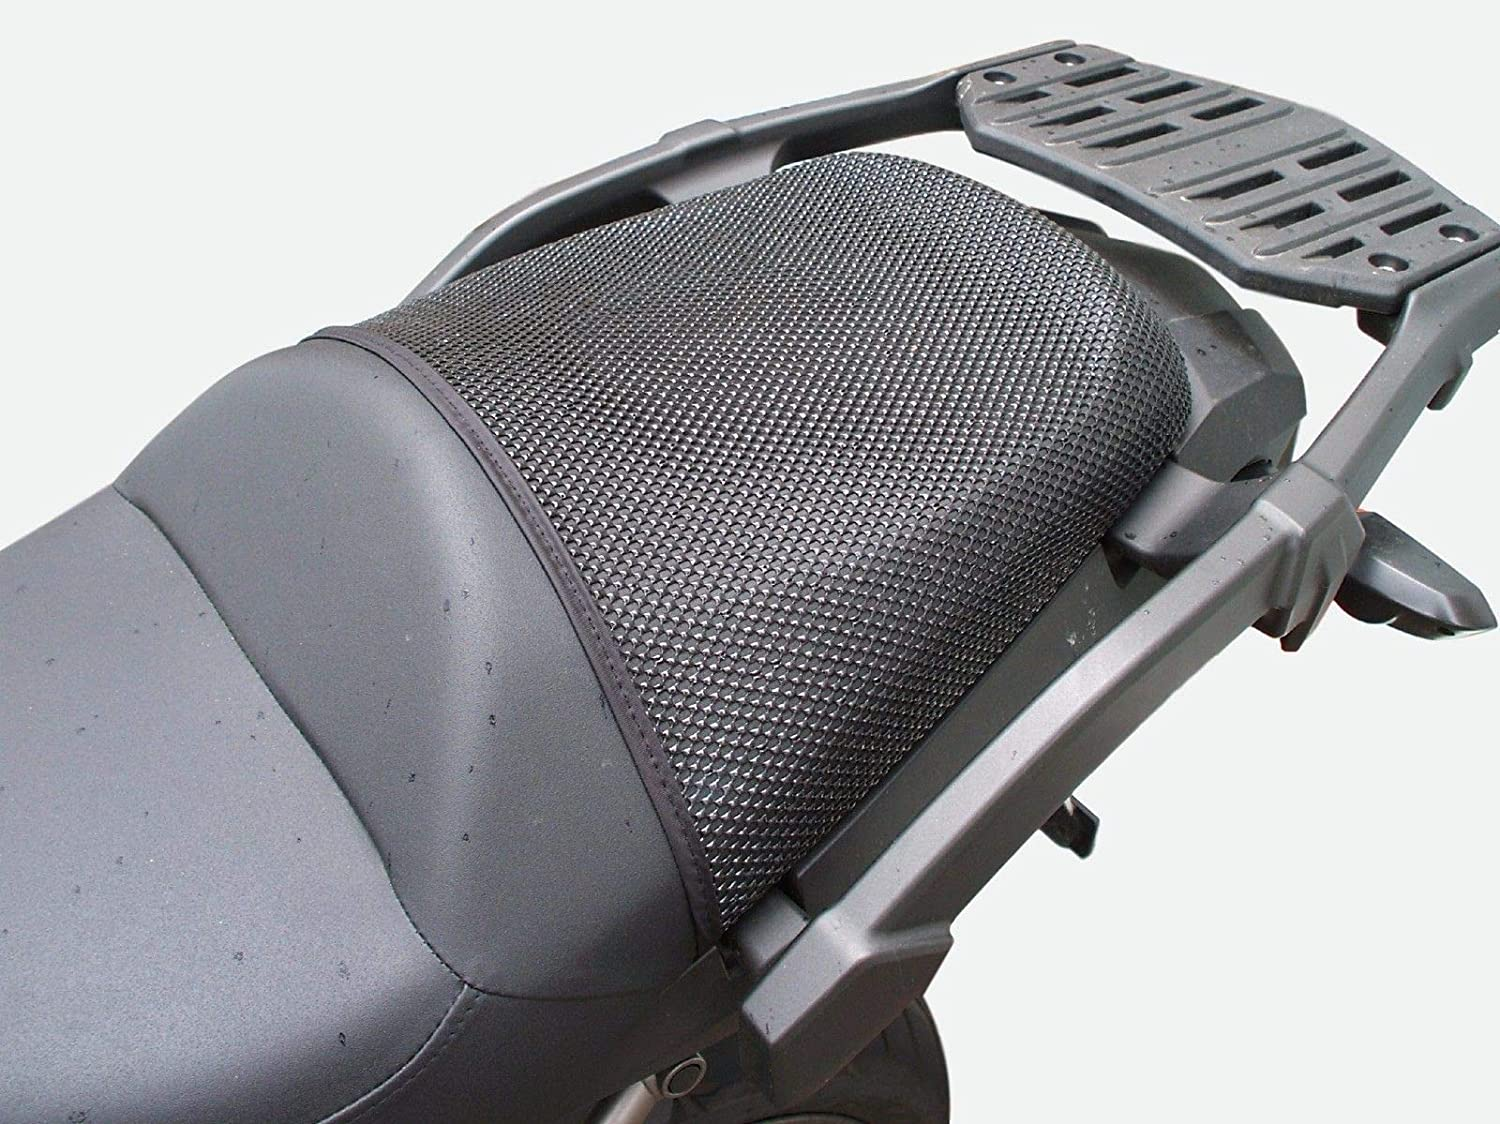 KAWASAKI VERSYS 1000 (2012-2018) TRIBOSEAT COPRISELLA PASSEGGERO ANTISCIVOLO NERO ADVANCED SEATING TECHNOLOGY LIMITED